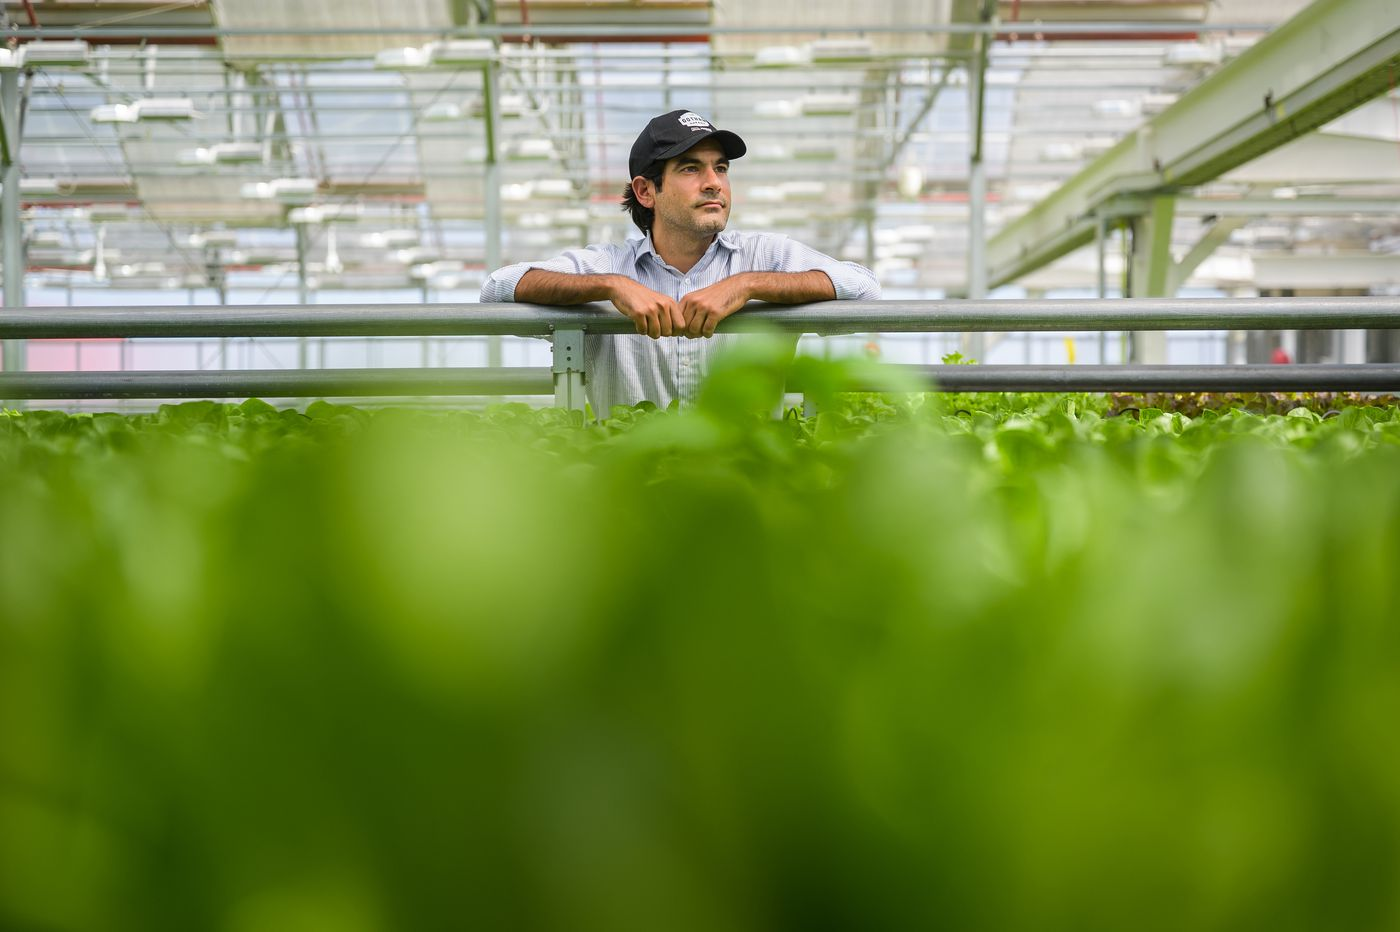 Indoor farming is one of the decade's hottest trends, but regulations make success elusive